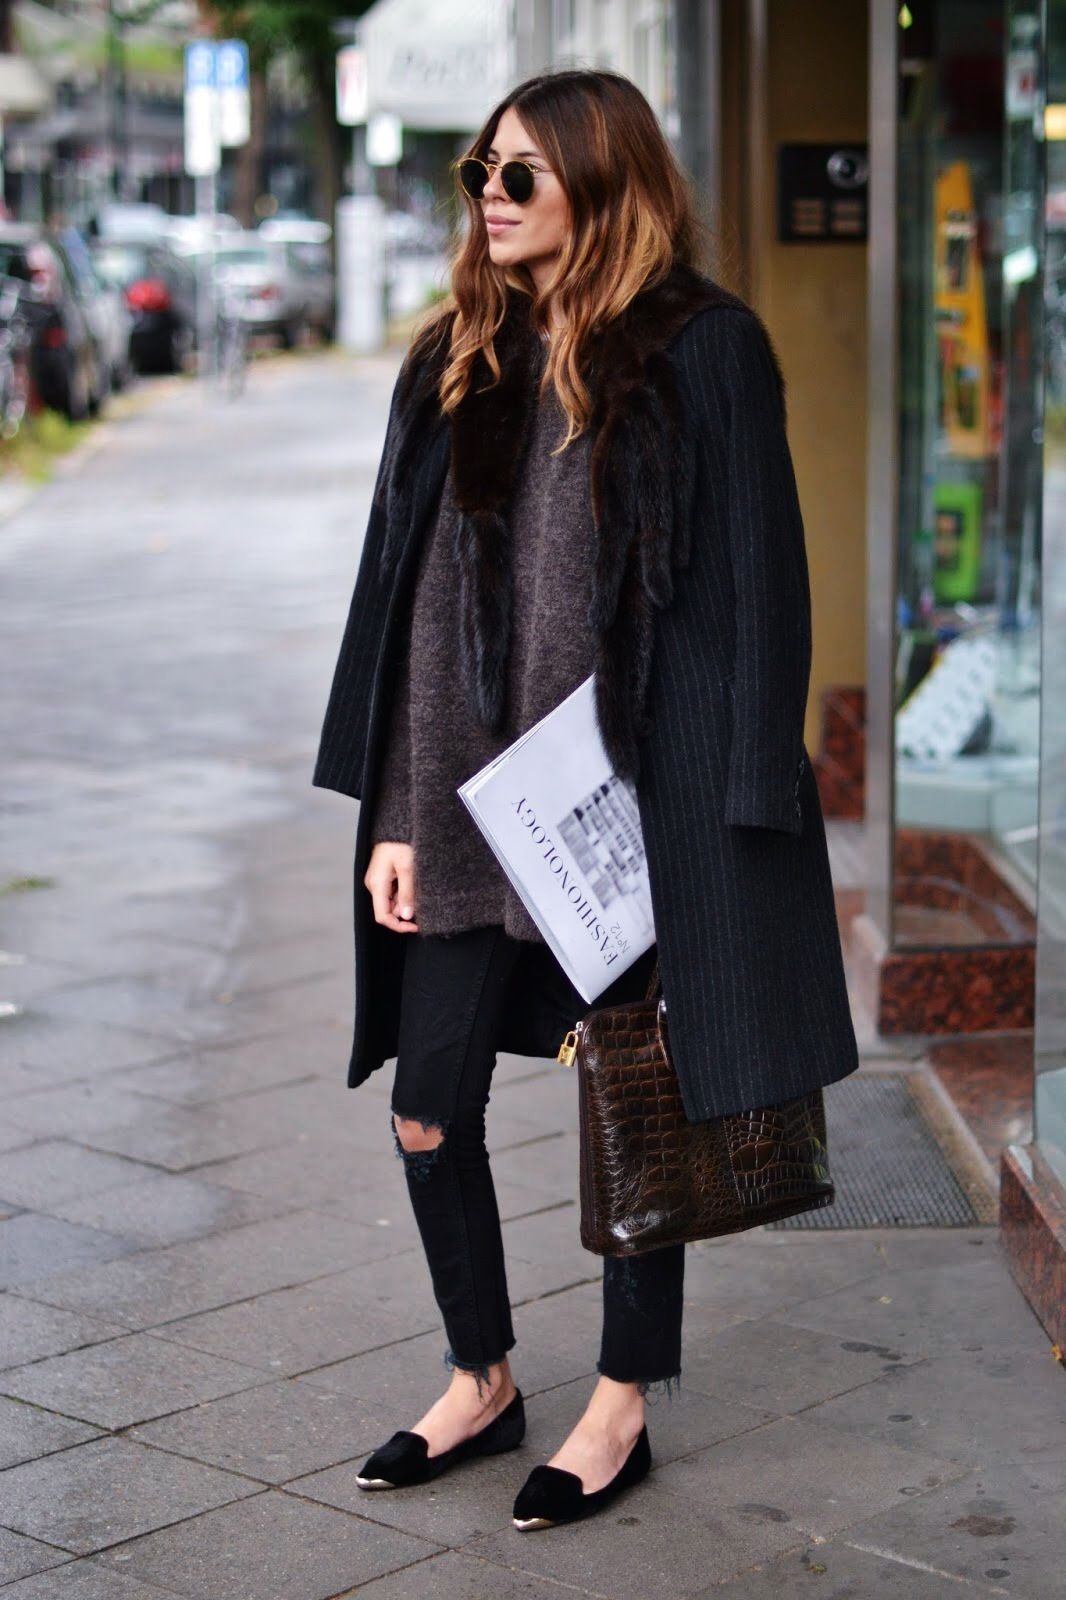 ICON: Maja Wyh - CALL US WHATEVER #FashionCrush